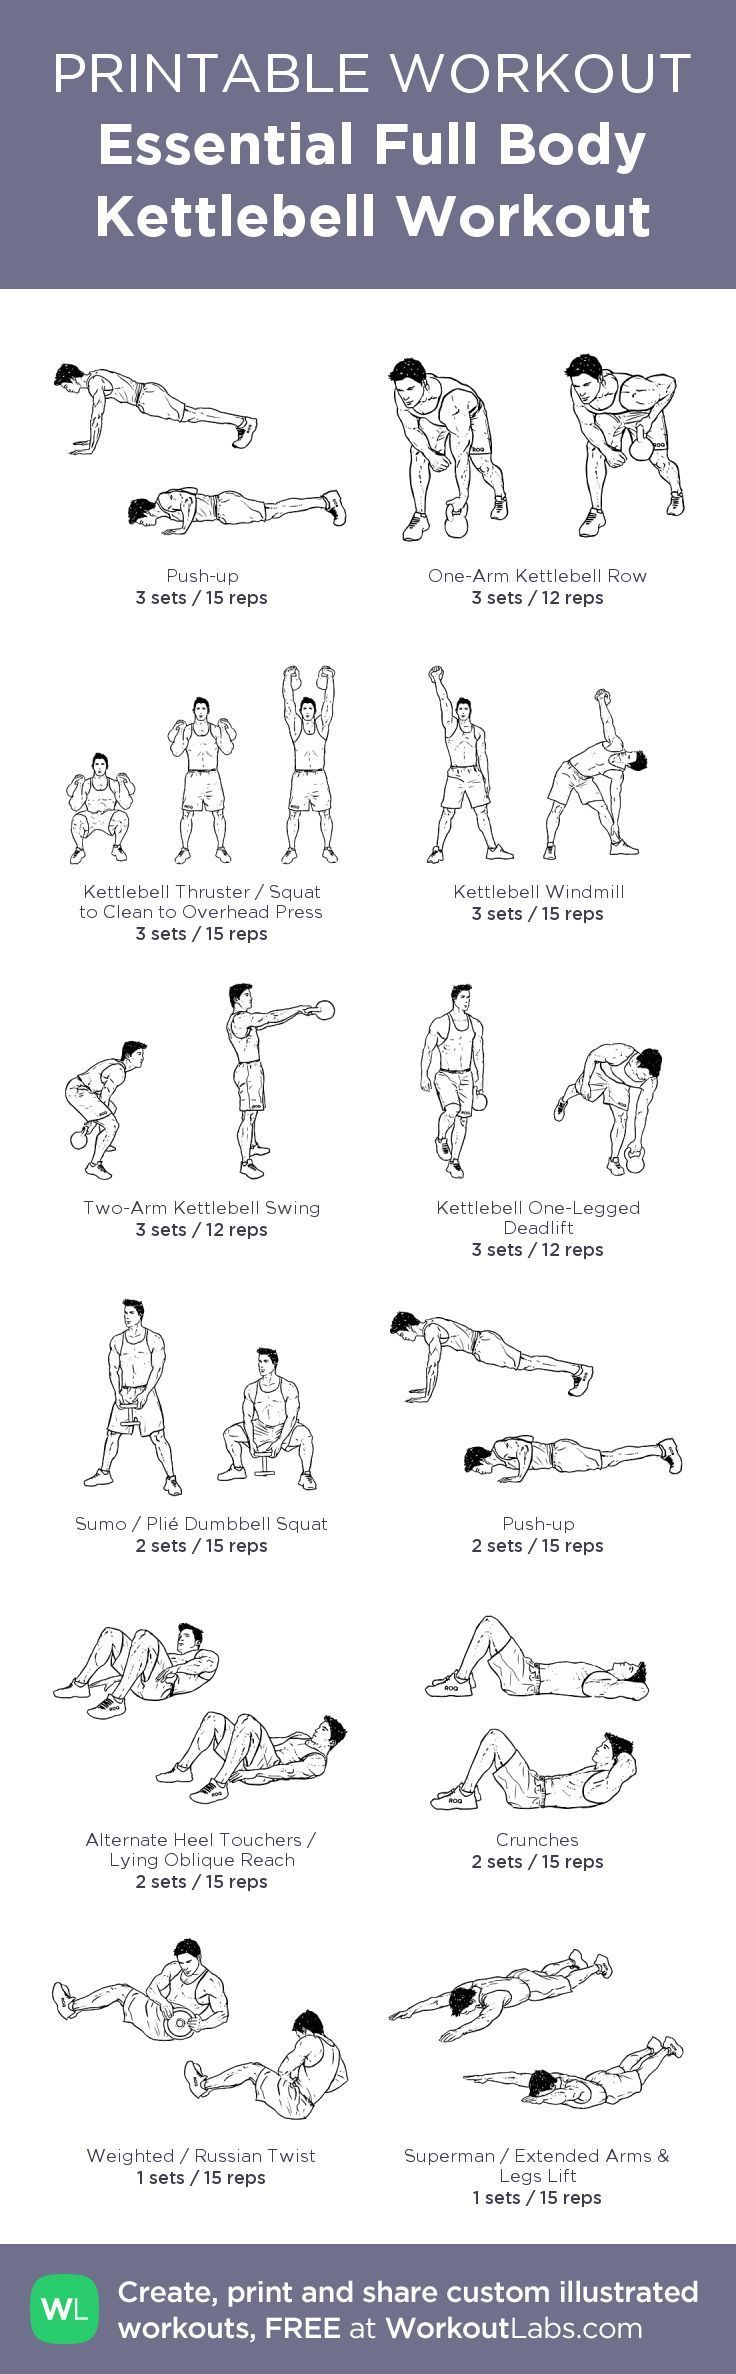 Essential Full Body Kettlebell Workout – my custom workout created at WorkoutLabs.com • Click through to download as printable PDF! #customworkout #Diet